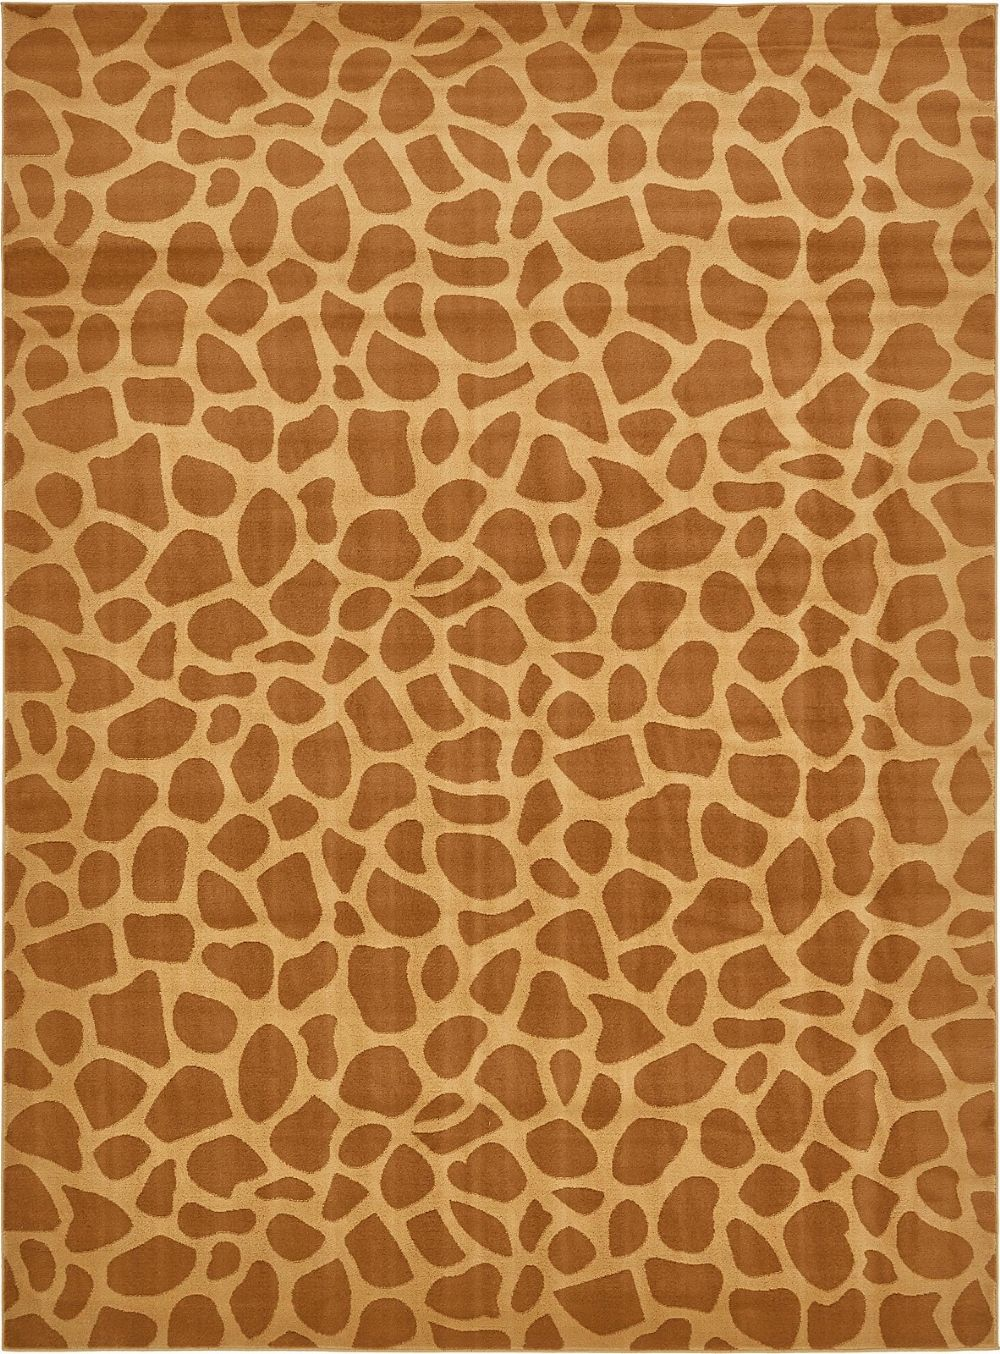 rugpal wild animal inspirations area rug collection